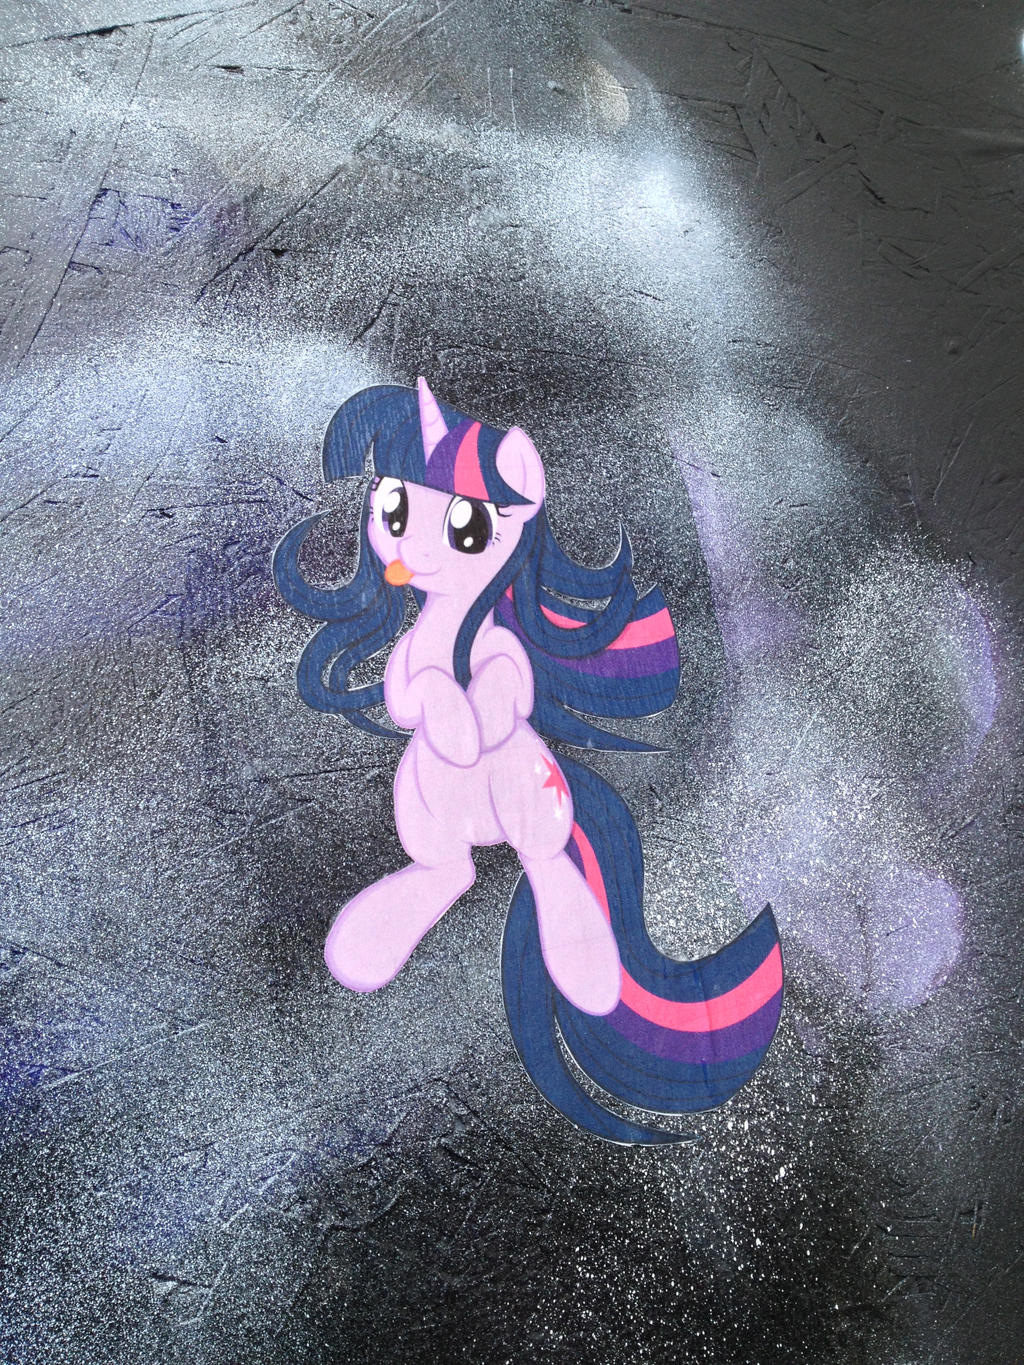 Twilight Wheat Paste by SCARFI5H